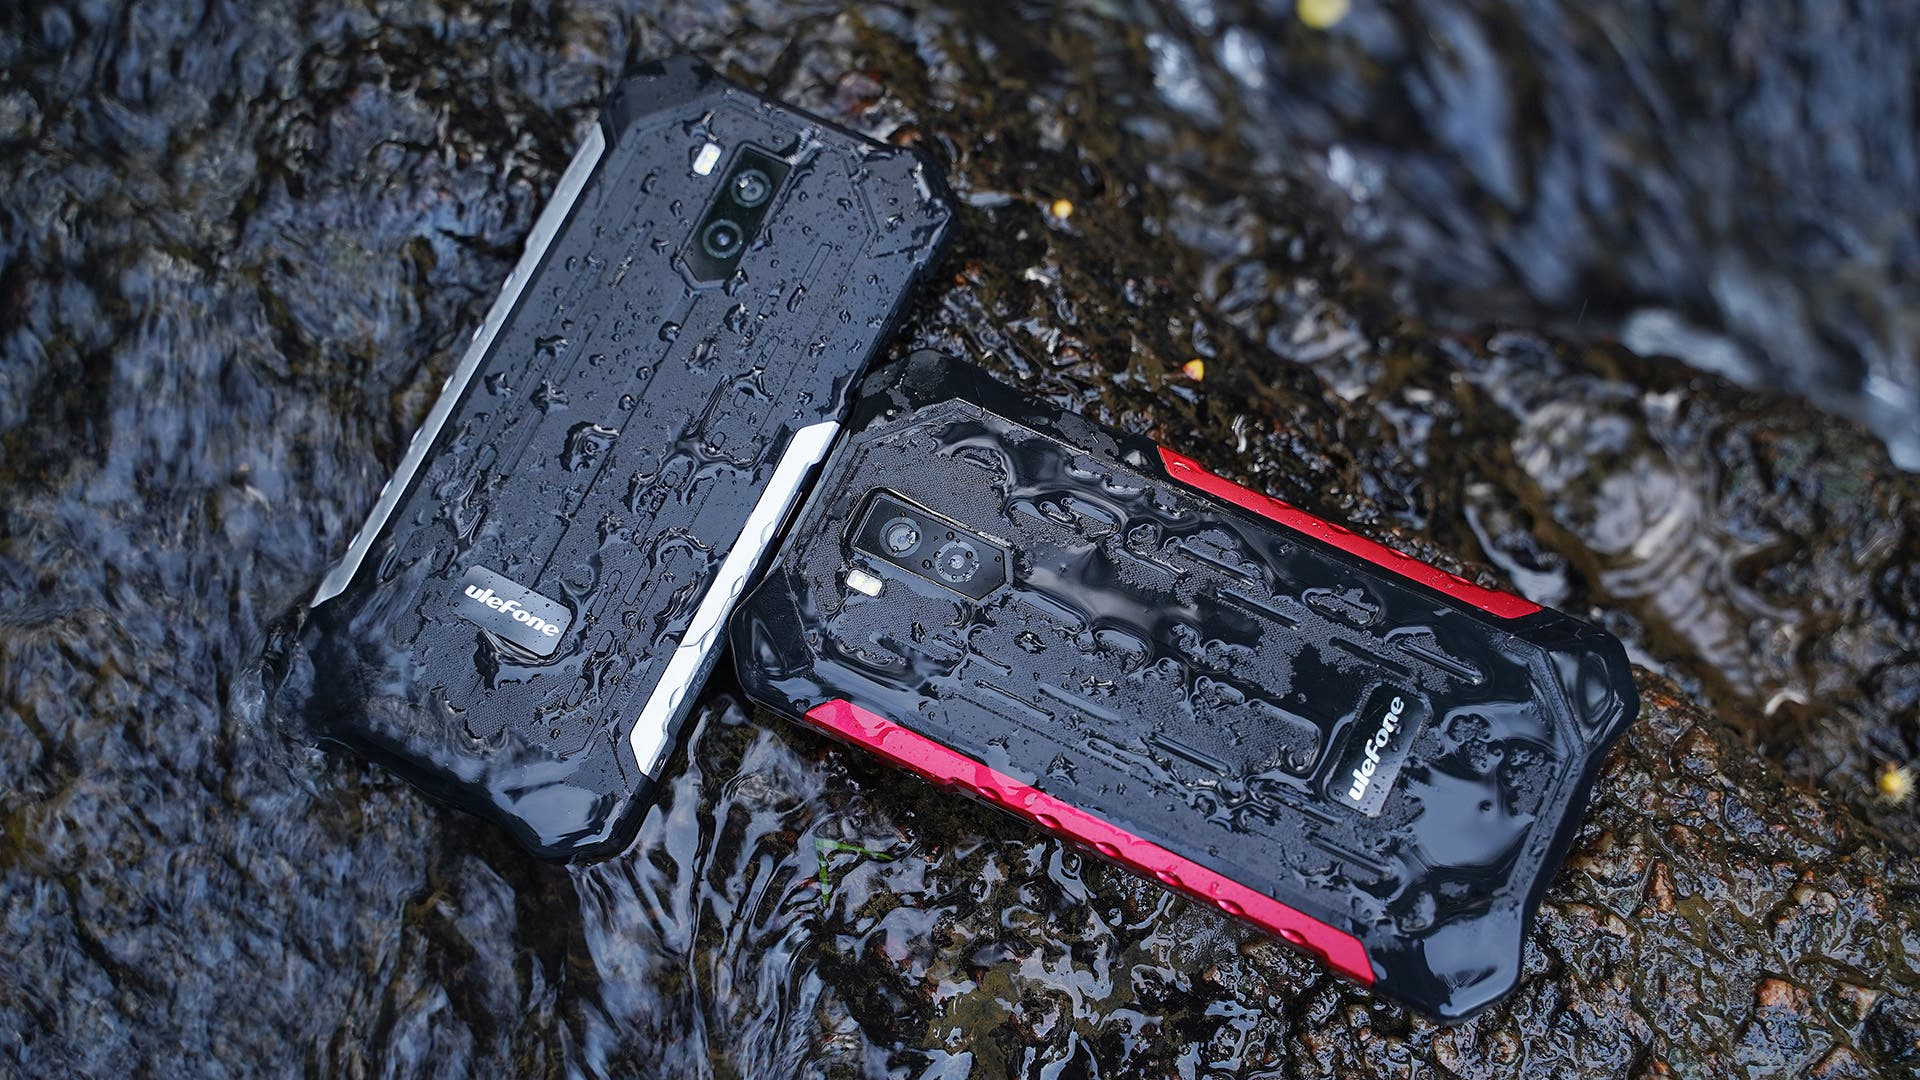 Ulefone Armor X3 Drop-Resistance Test Video Shopping Festival